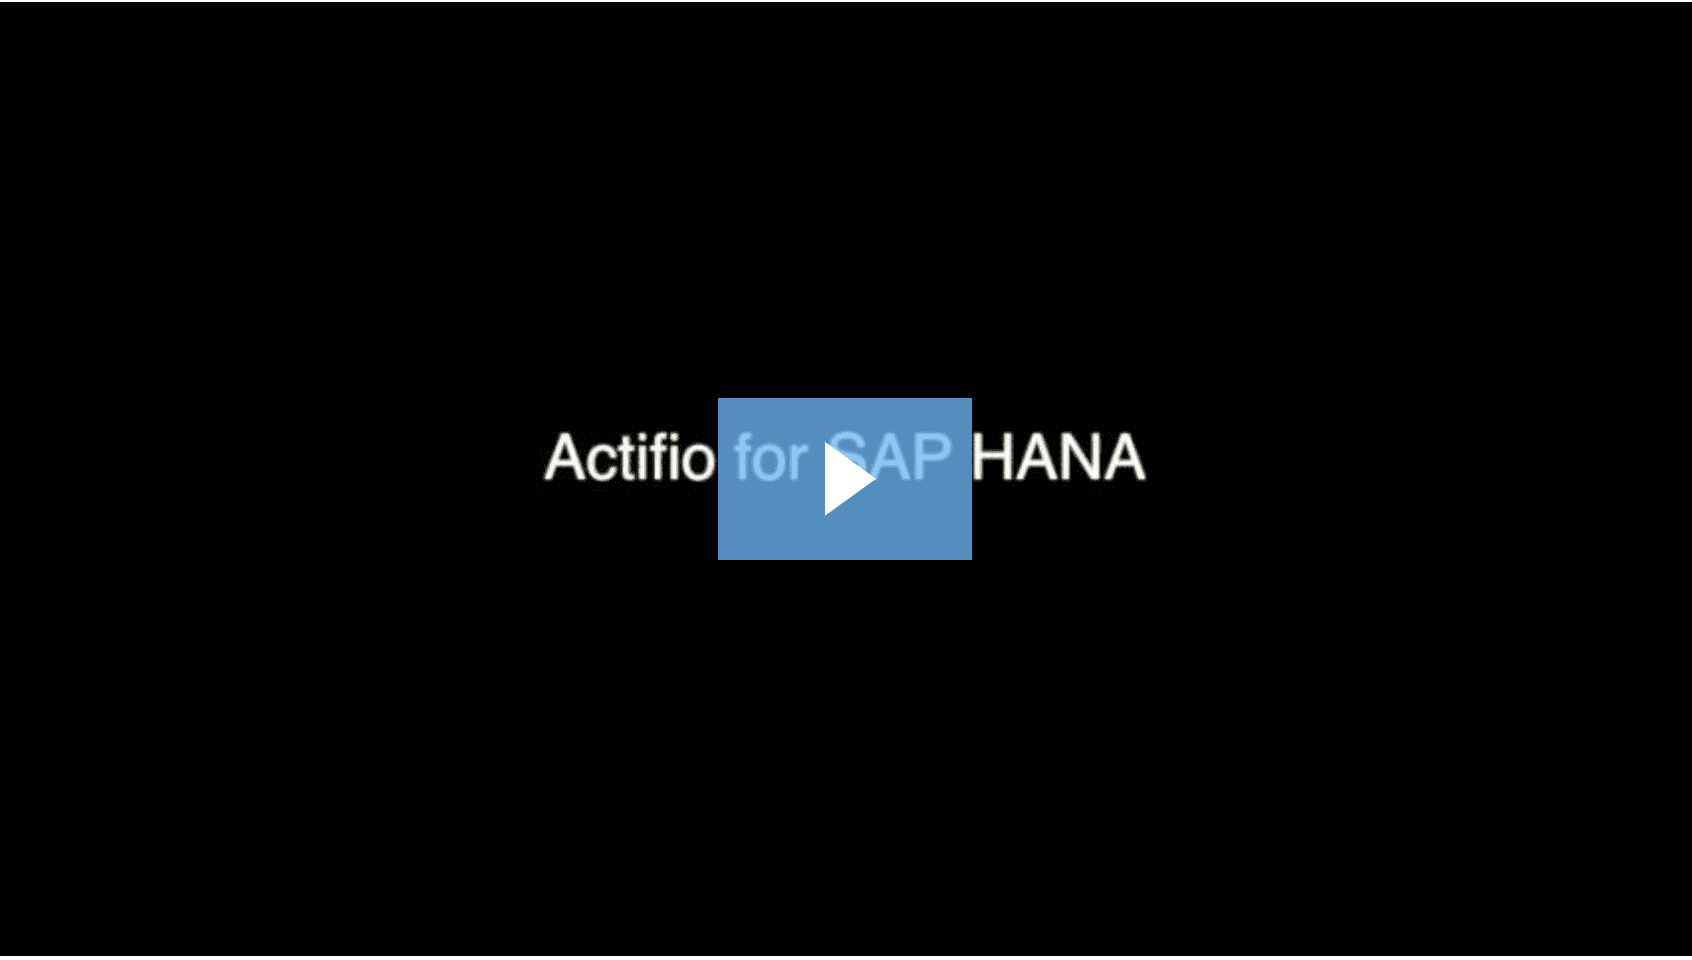 Actifio for SAP